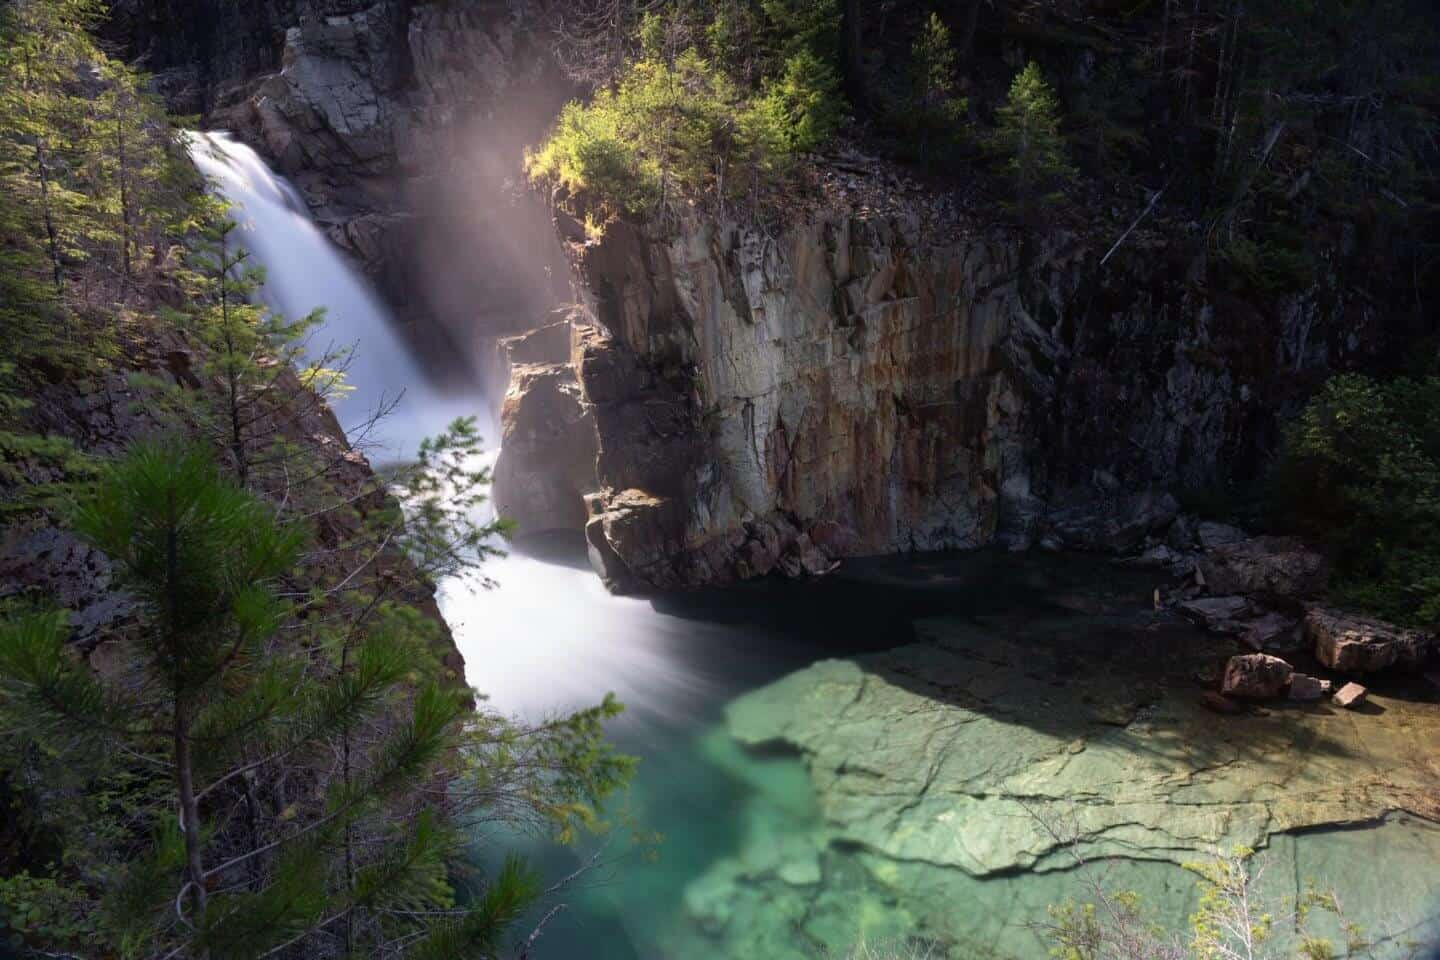 The Upper view of the mighty Lower Myra Falls in Strathcona